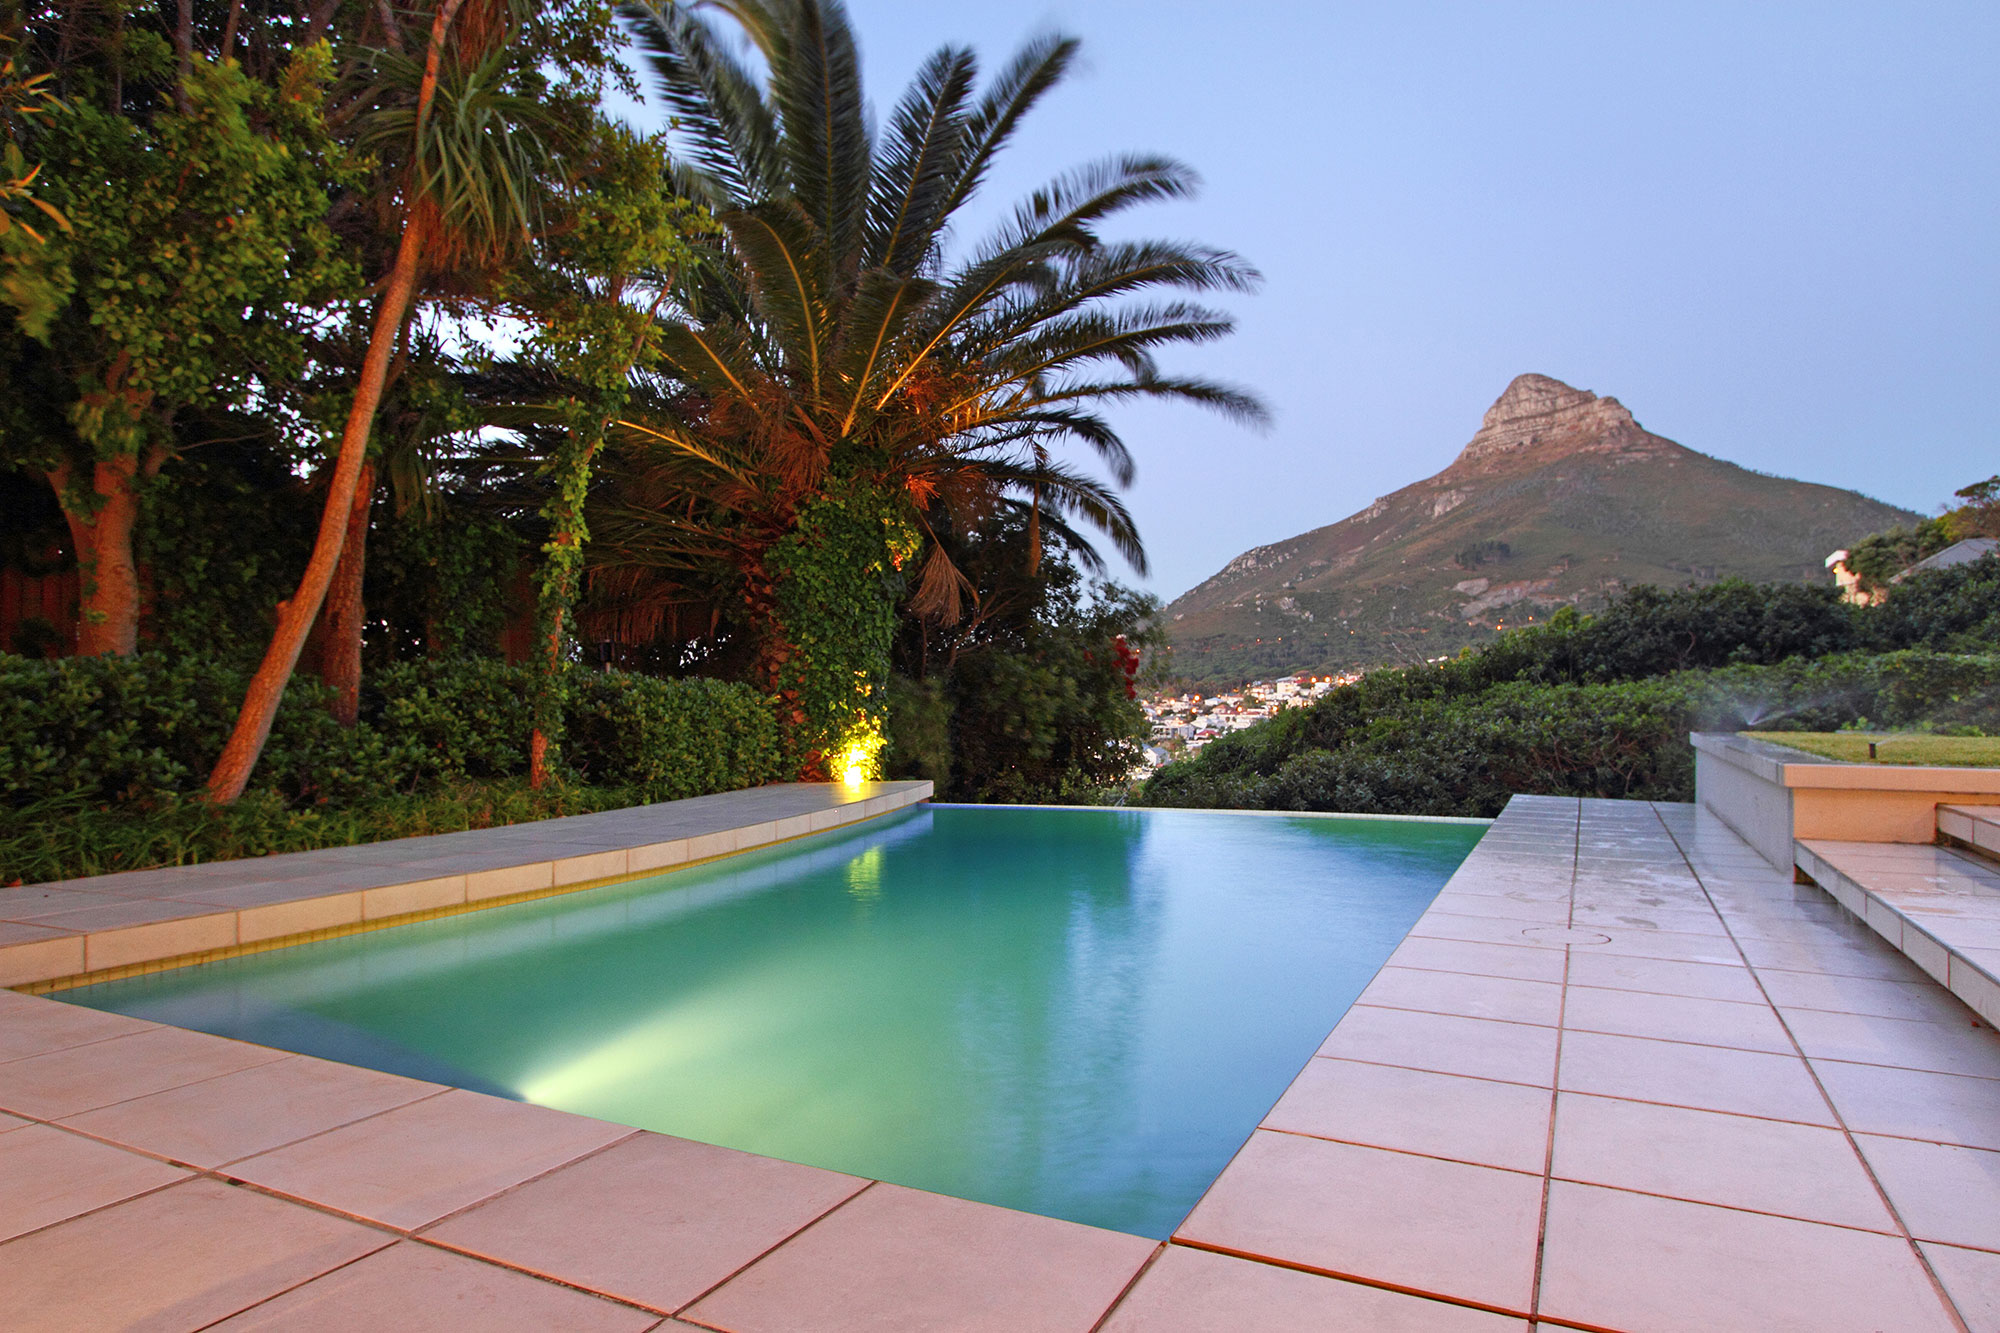 Pool terrace at dusk looking towards Lion's Head